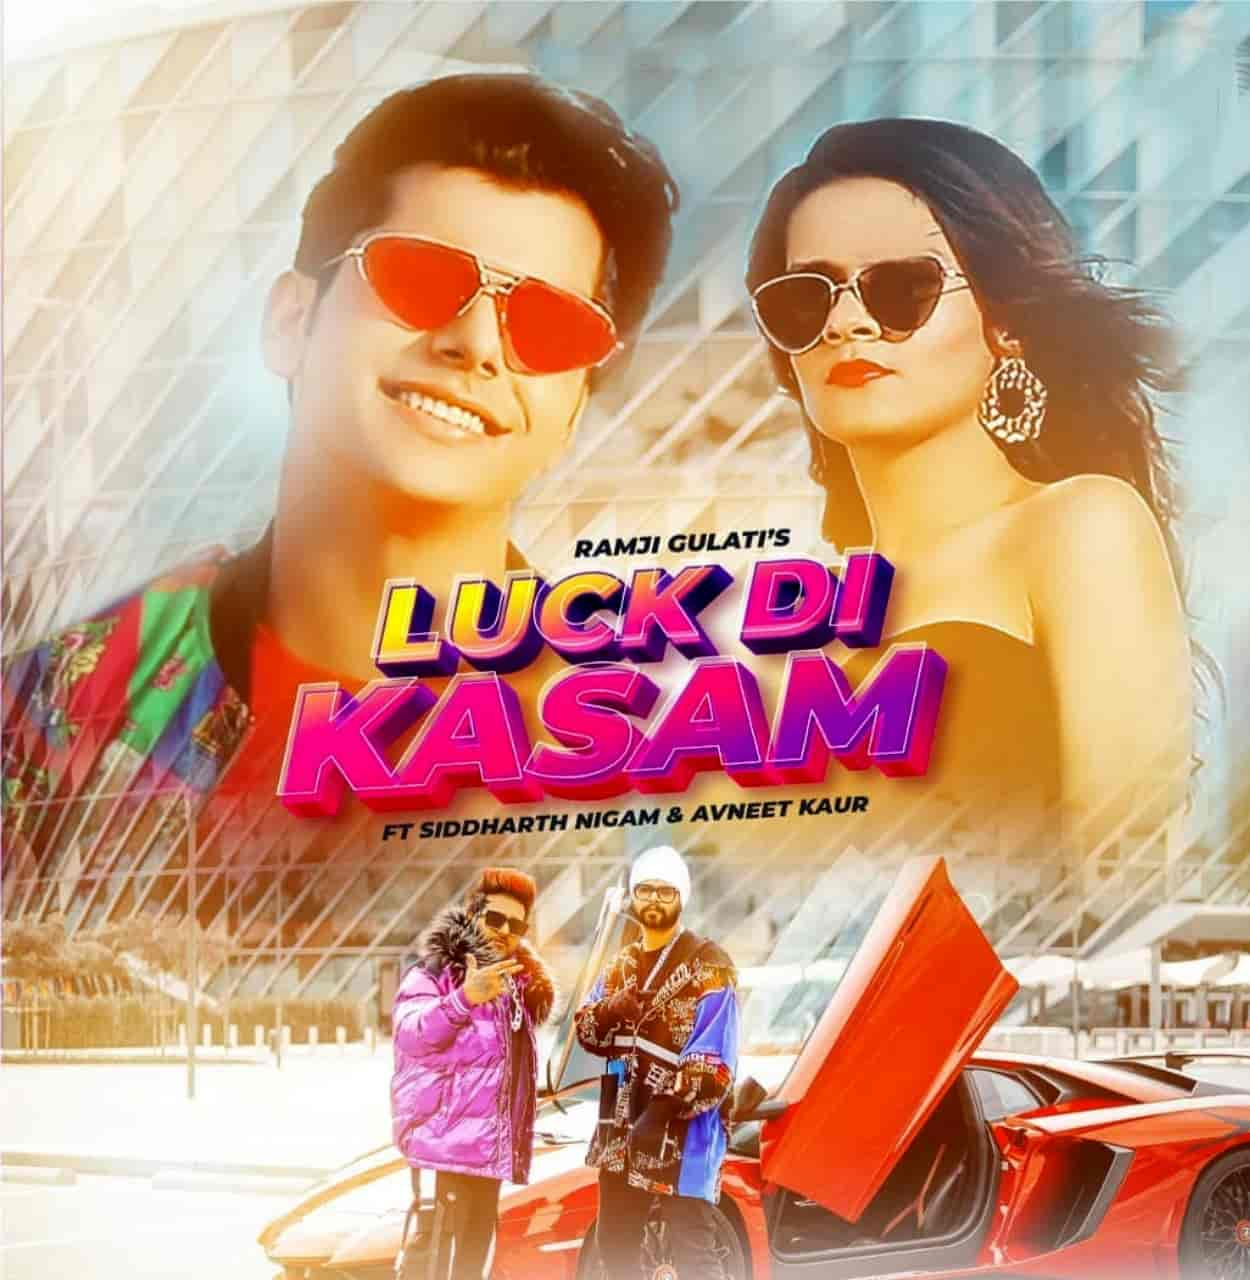 Luck Di Kasam Song Images By Ramji Gulati